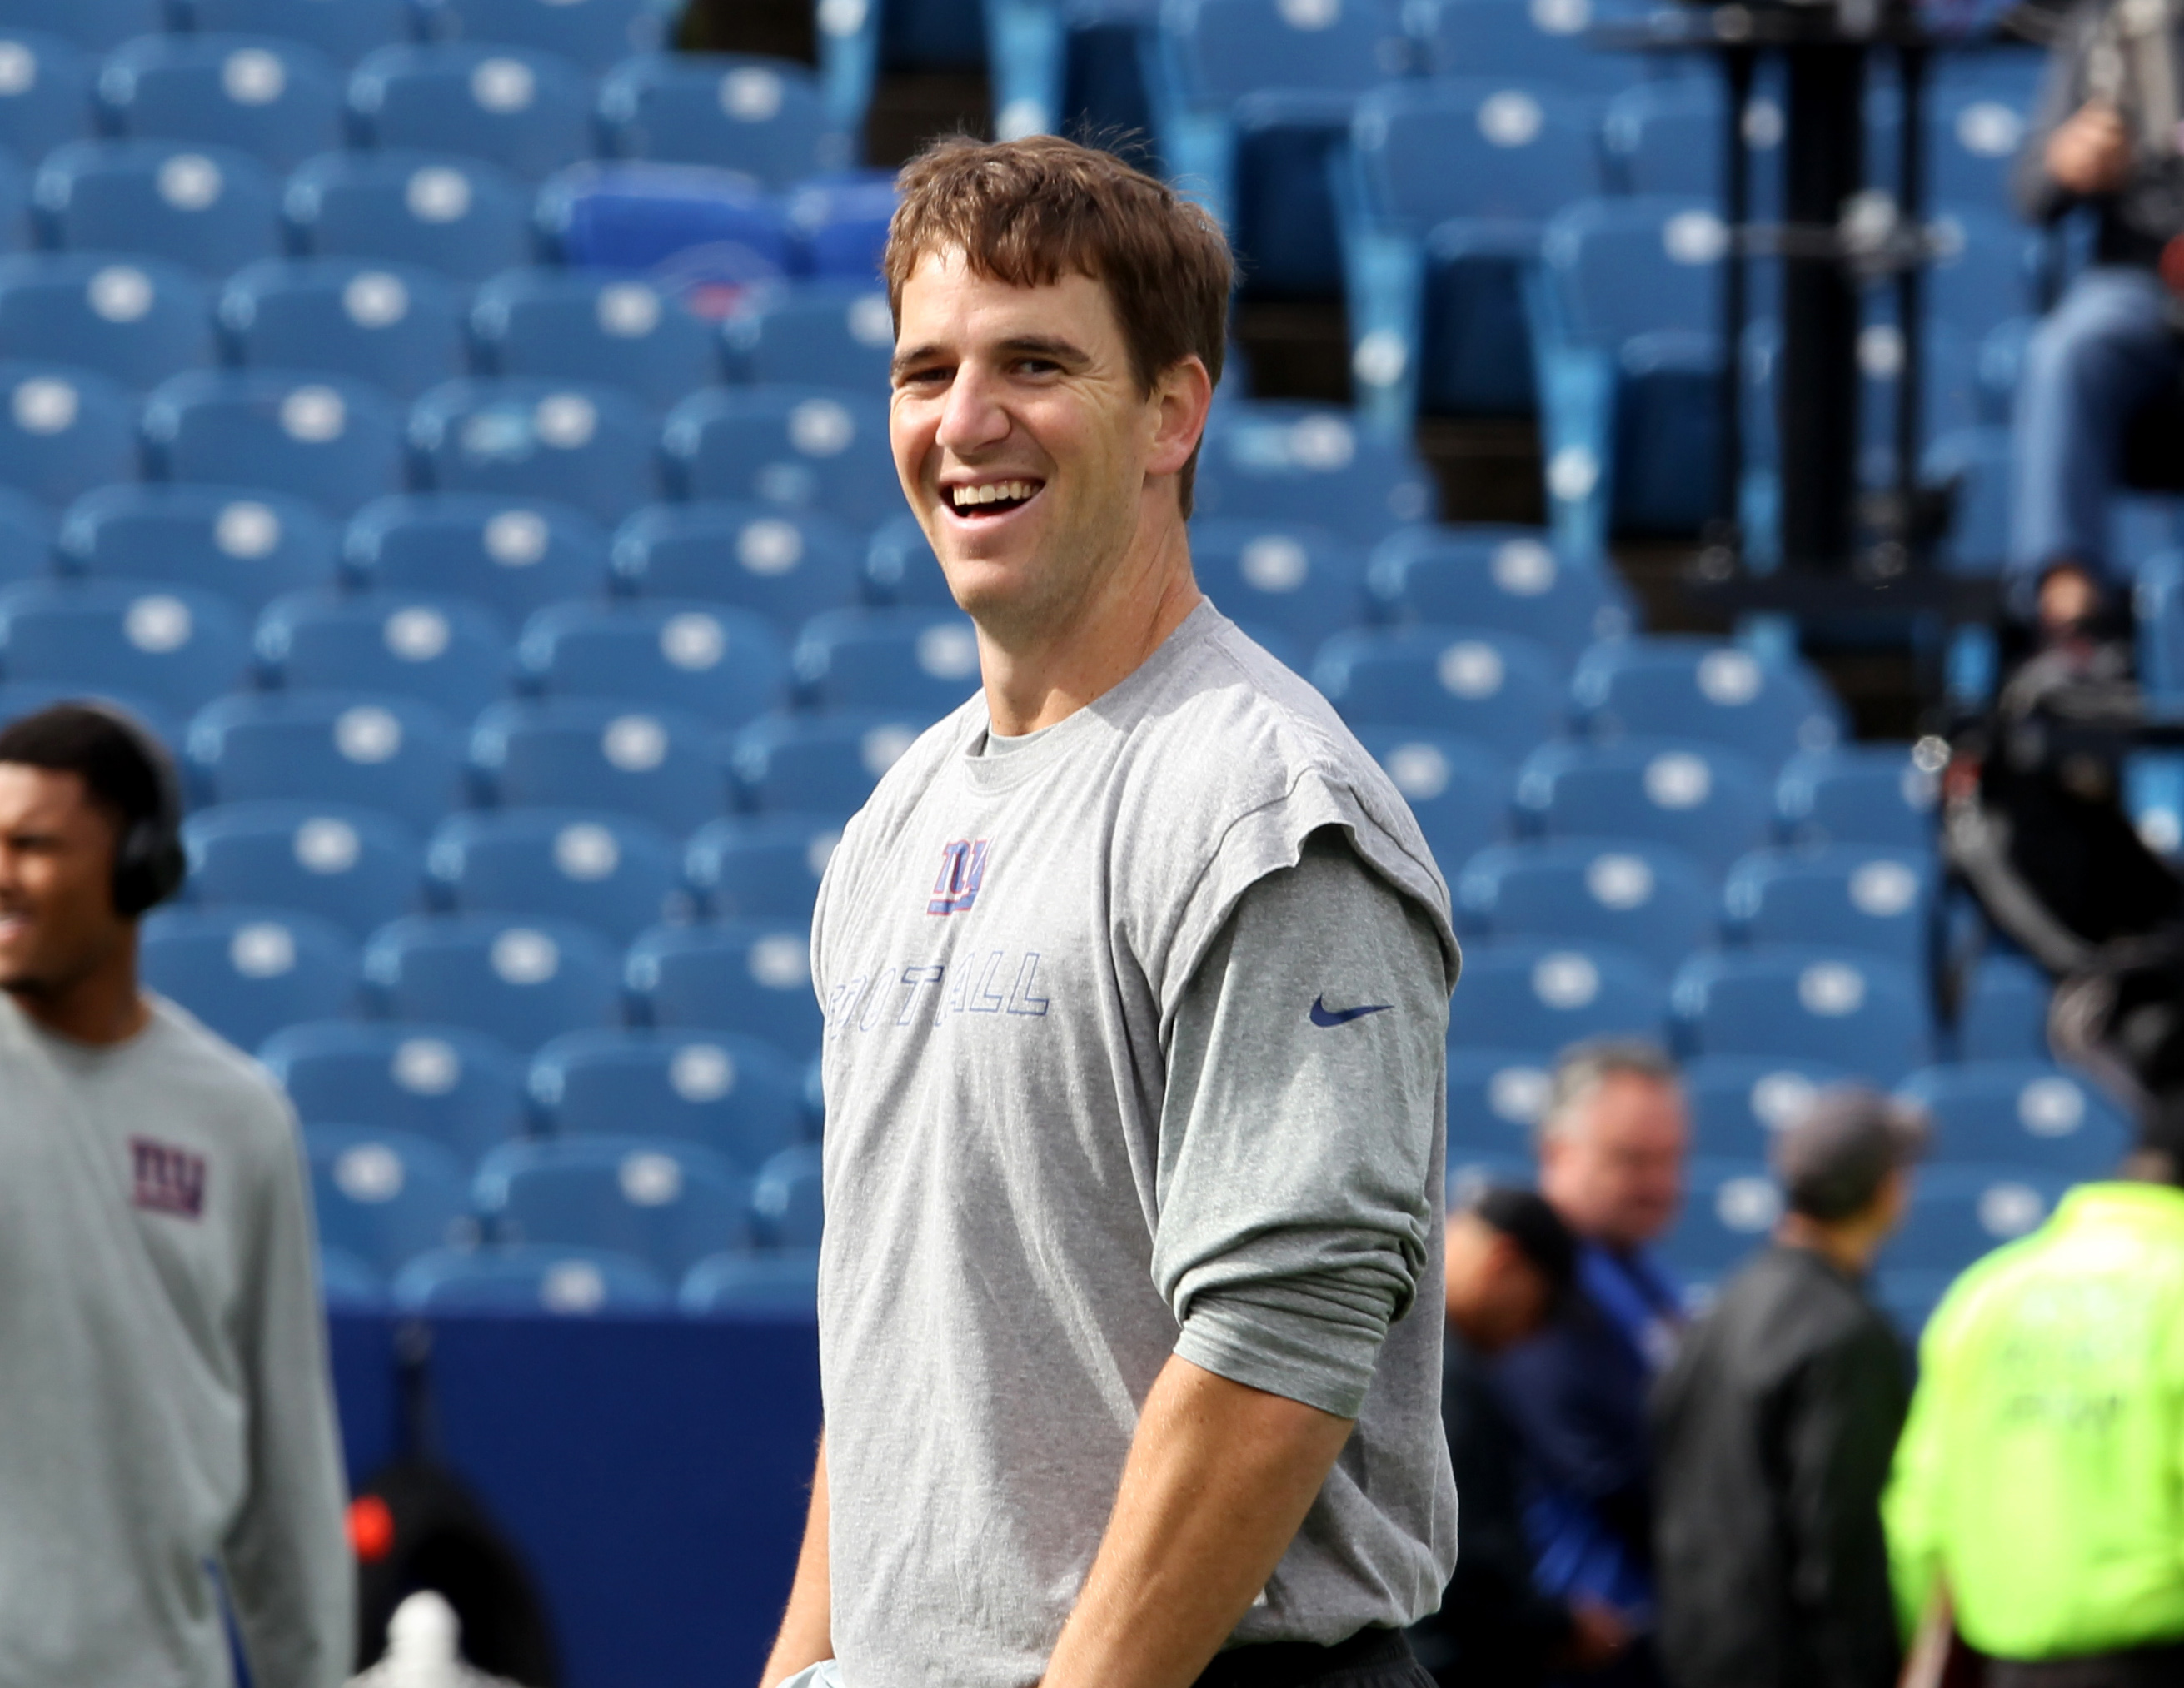 Will Eli Manning and the Giants be smiling Sunday night?